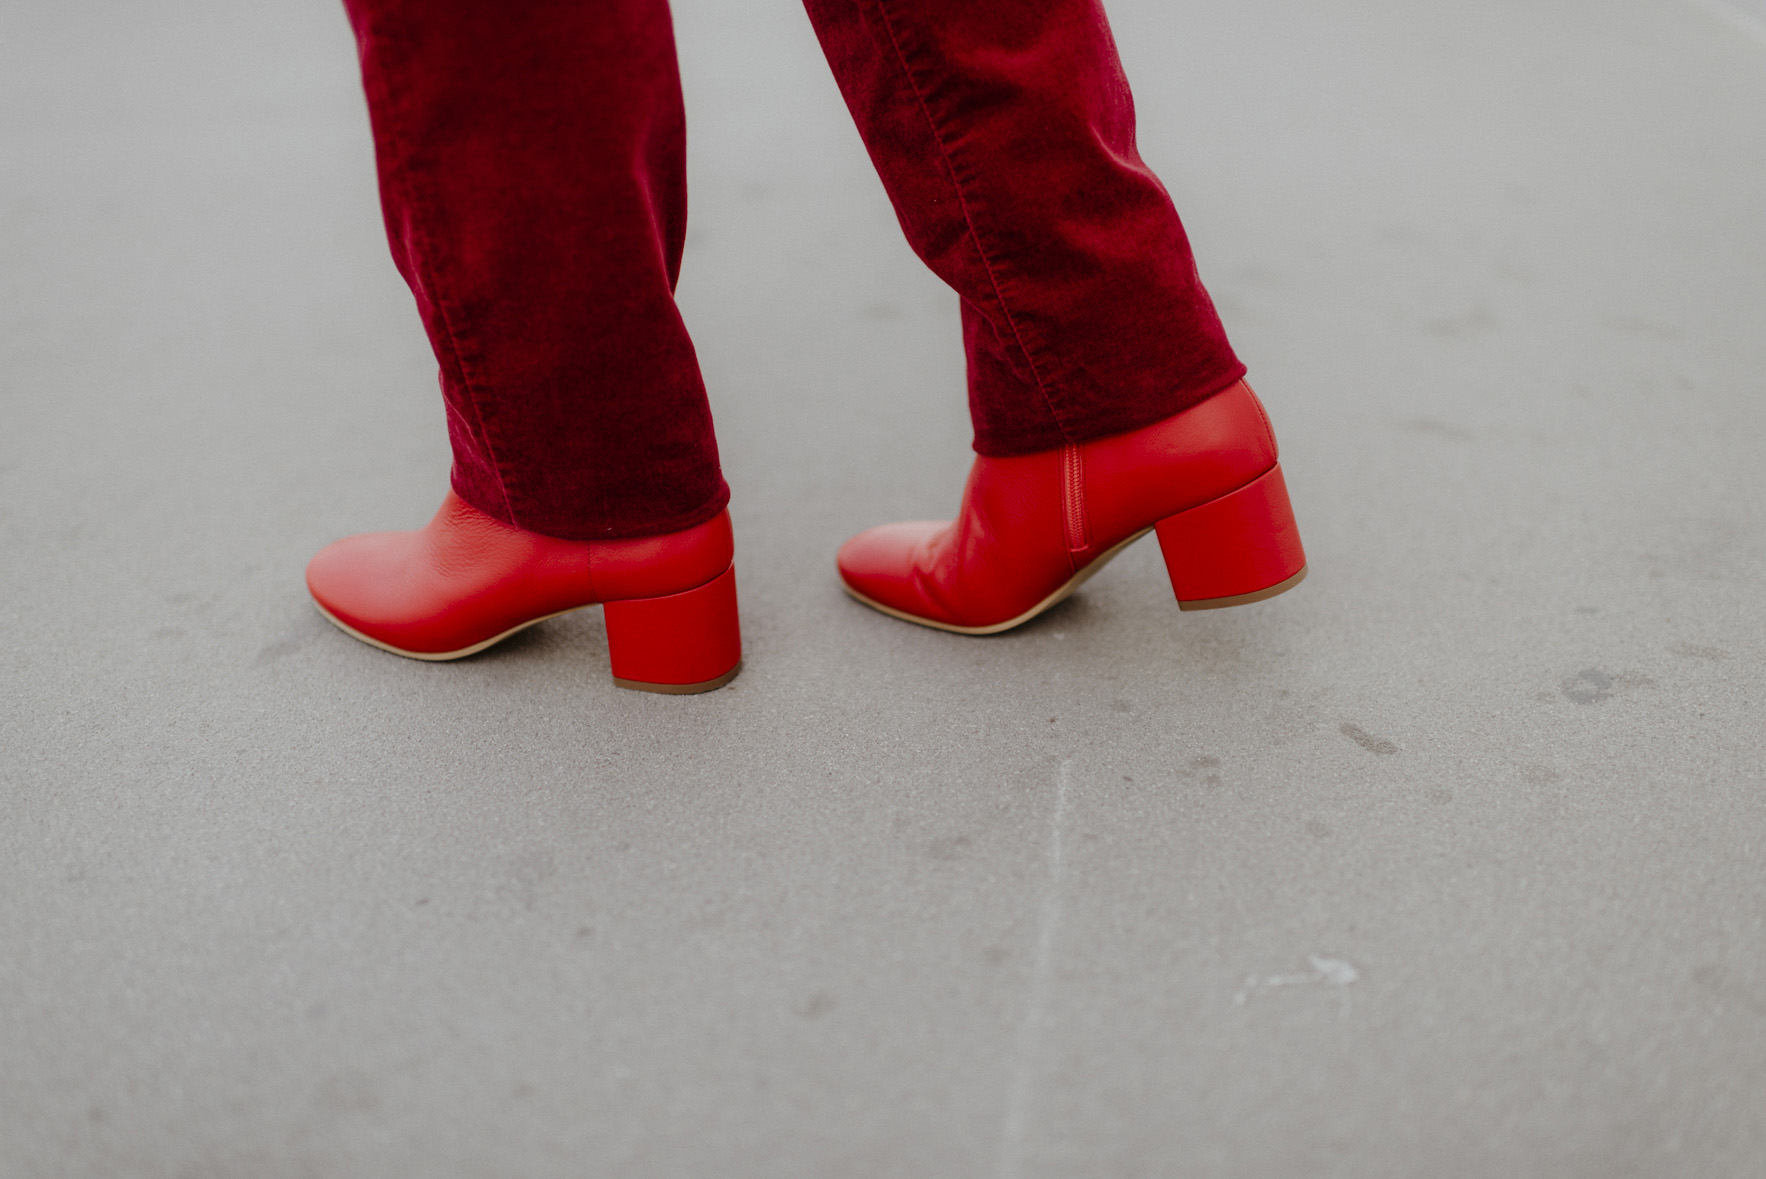 greenlooksgreat-ninetofive-ethical-shoes-red-ankle-boots